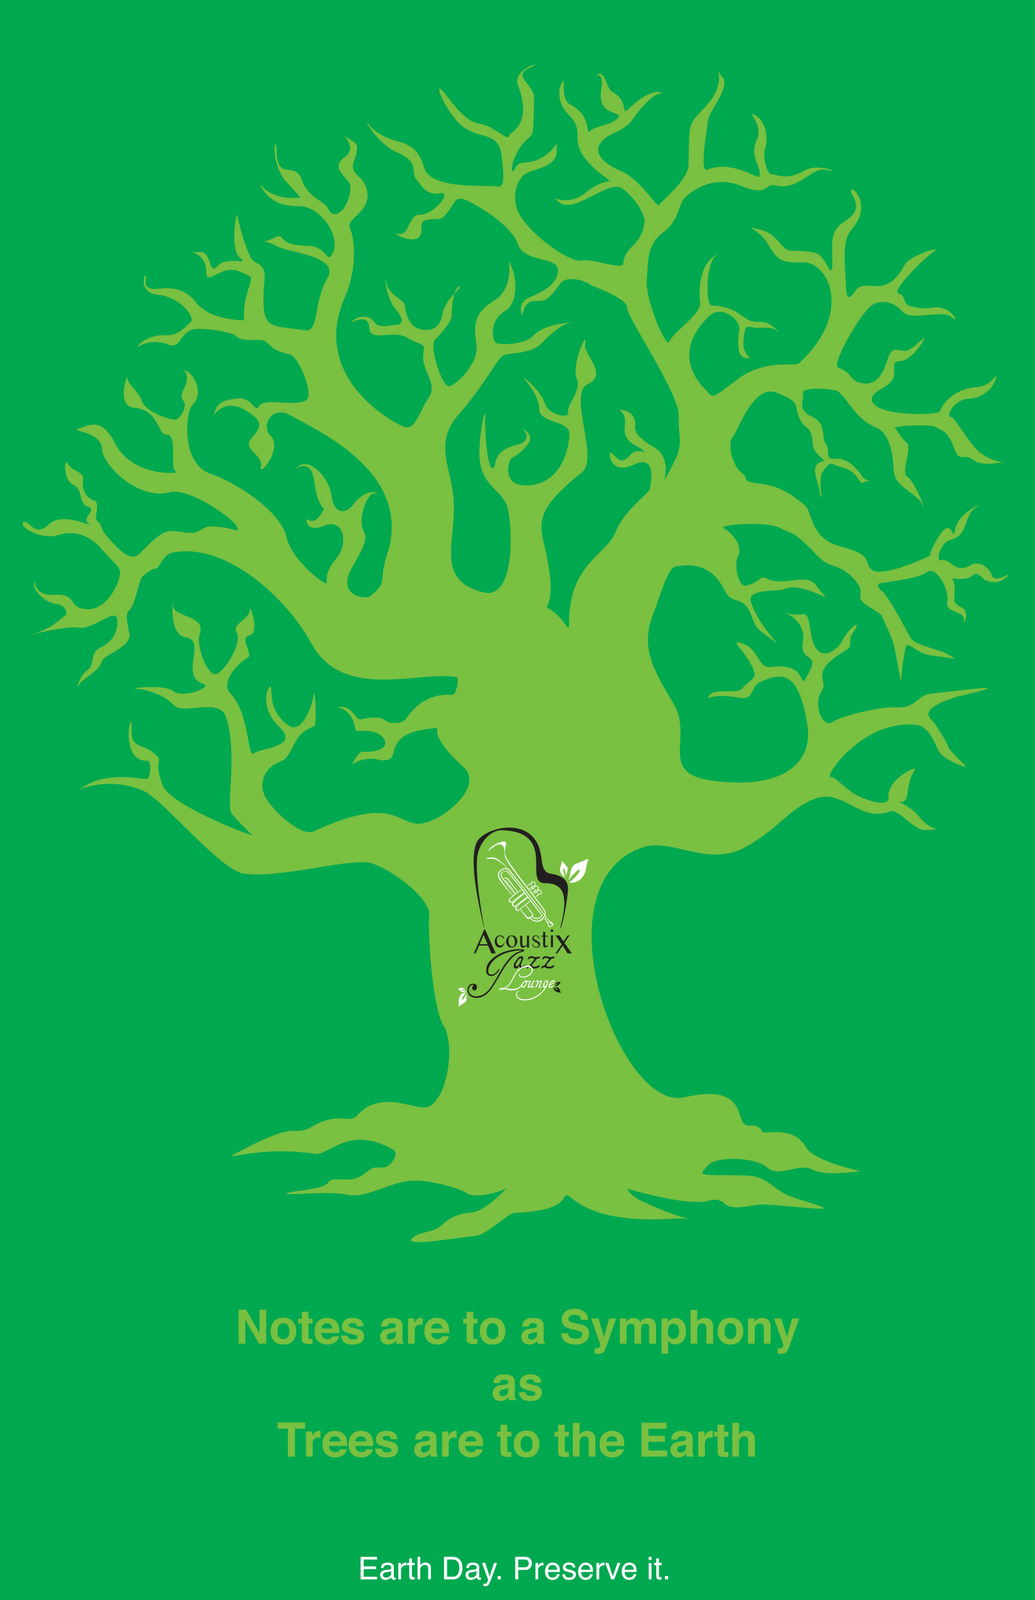 Poster design nature - Set Two Music Under The Trees The Way Mother Nature Intended This Will Actually Be For An Event I Will Ad Information About An Outside Concert In